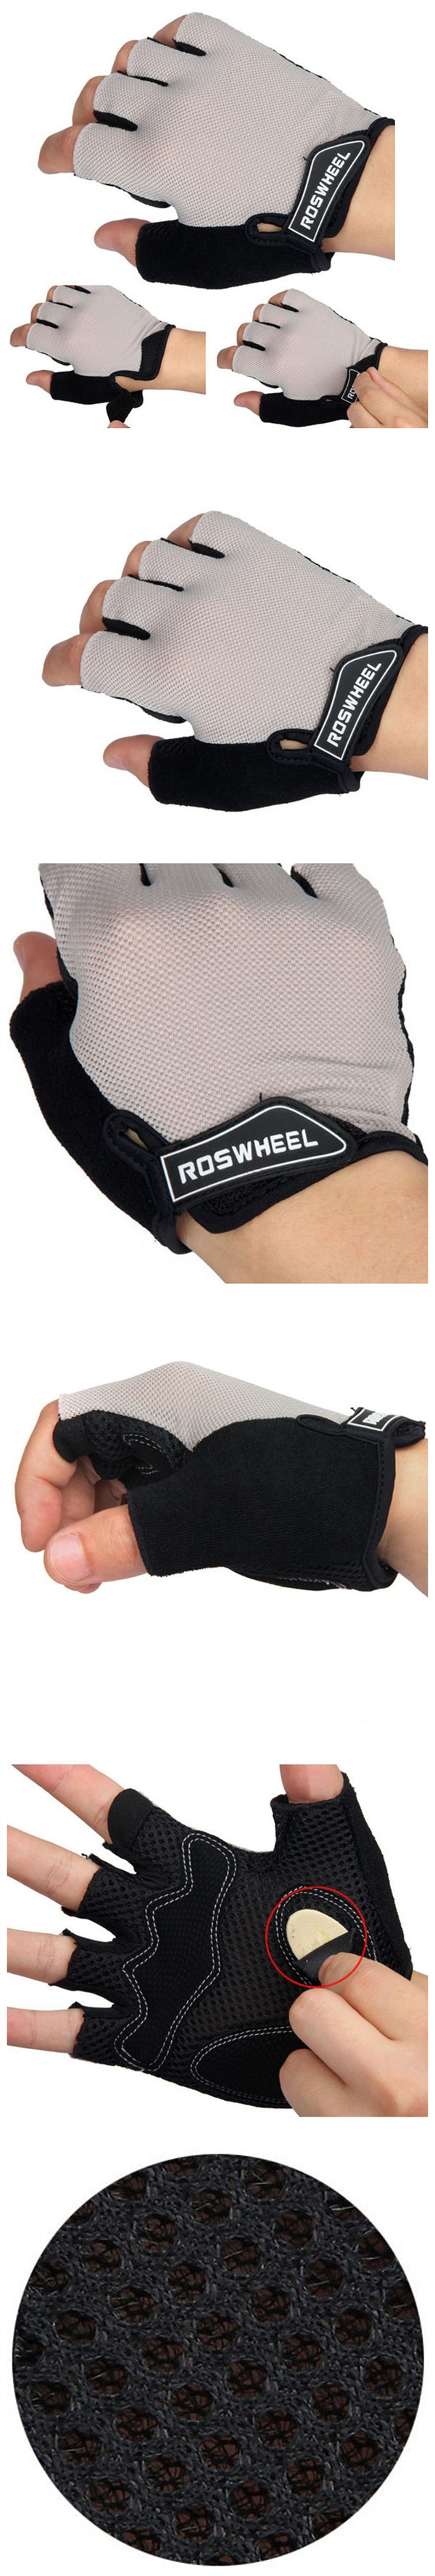 ROSWHEEL Cycling Half Finger Gloves Outdooors Glove Bike Accessories